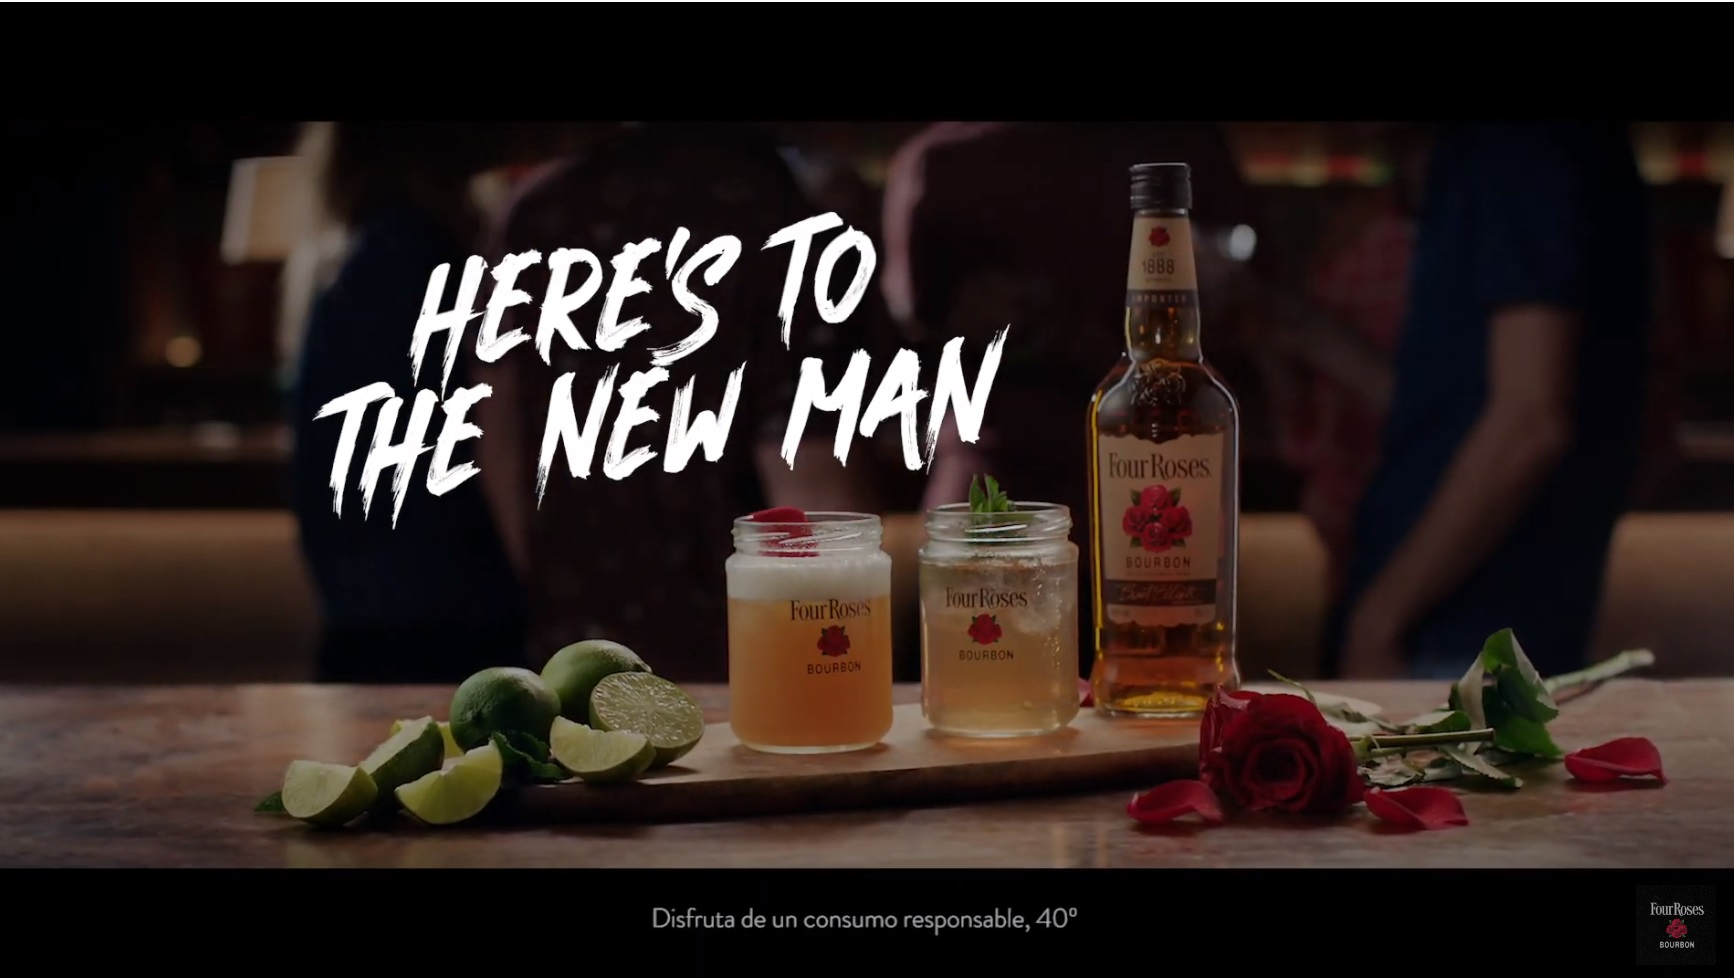 ofensiva-Four-Roses-Bourbon-Heres-the-New-Man-programapublicidad-muy-grande